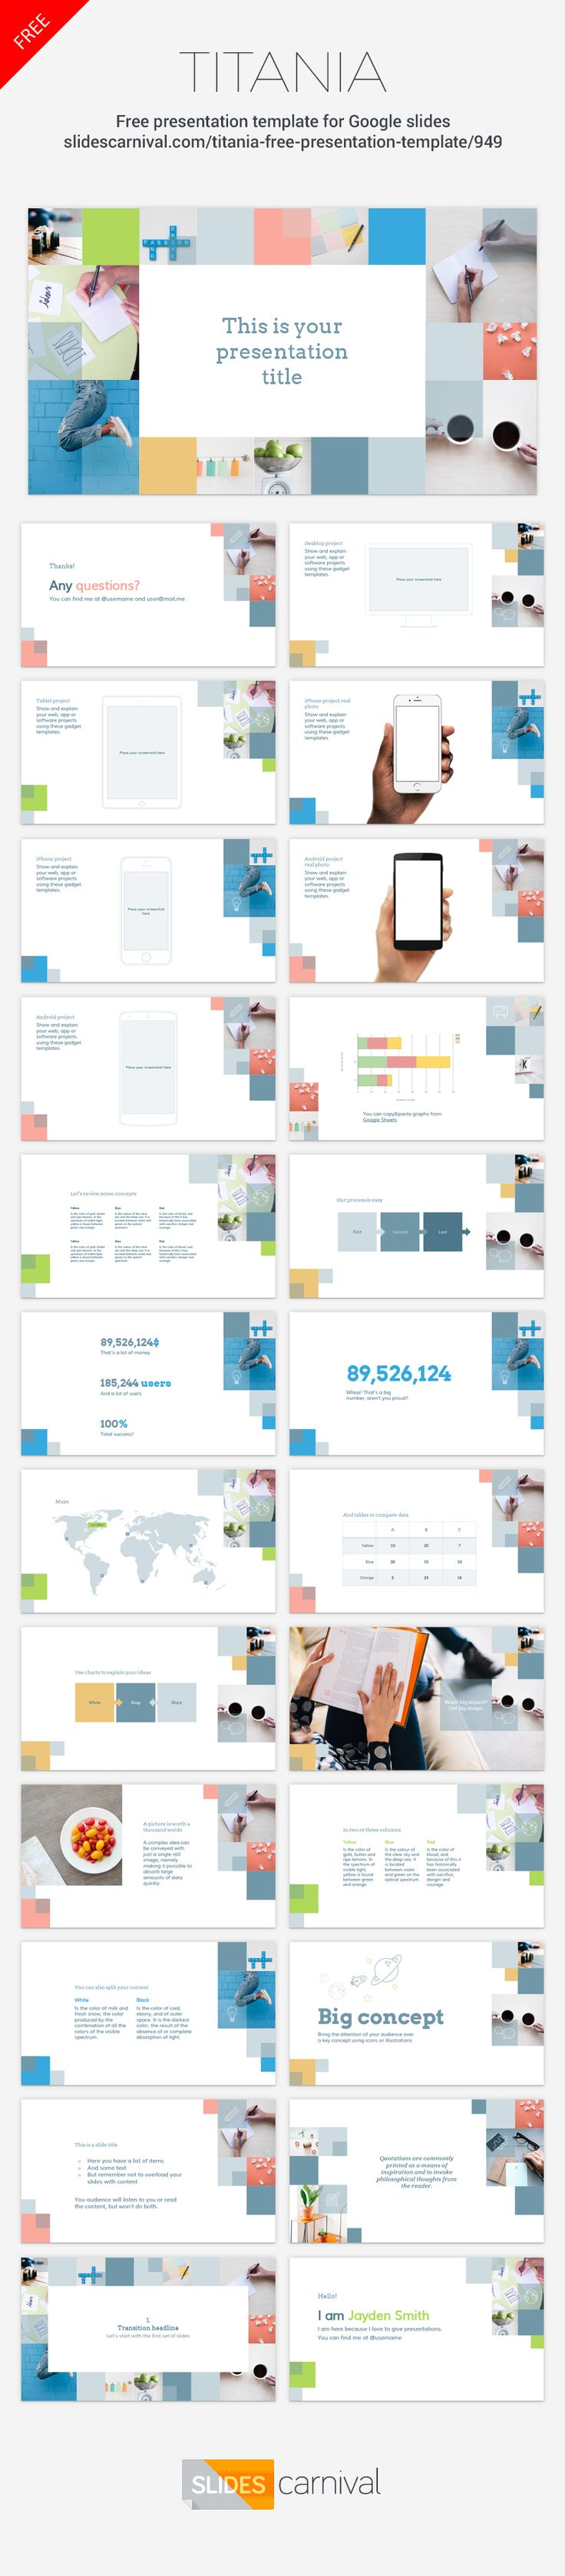 simple presentation topic business prezi templates prezibase  best ideas about presentation topics interesting positive colorful and professional this presentation template suits a great